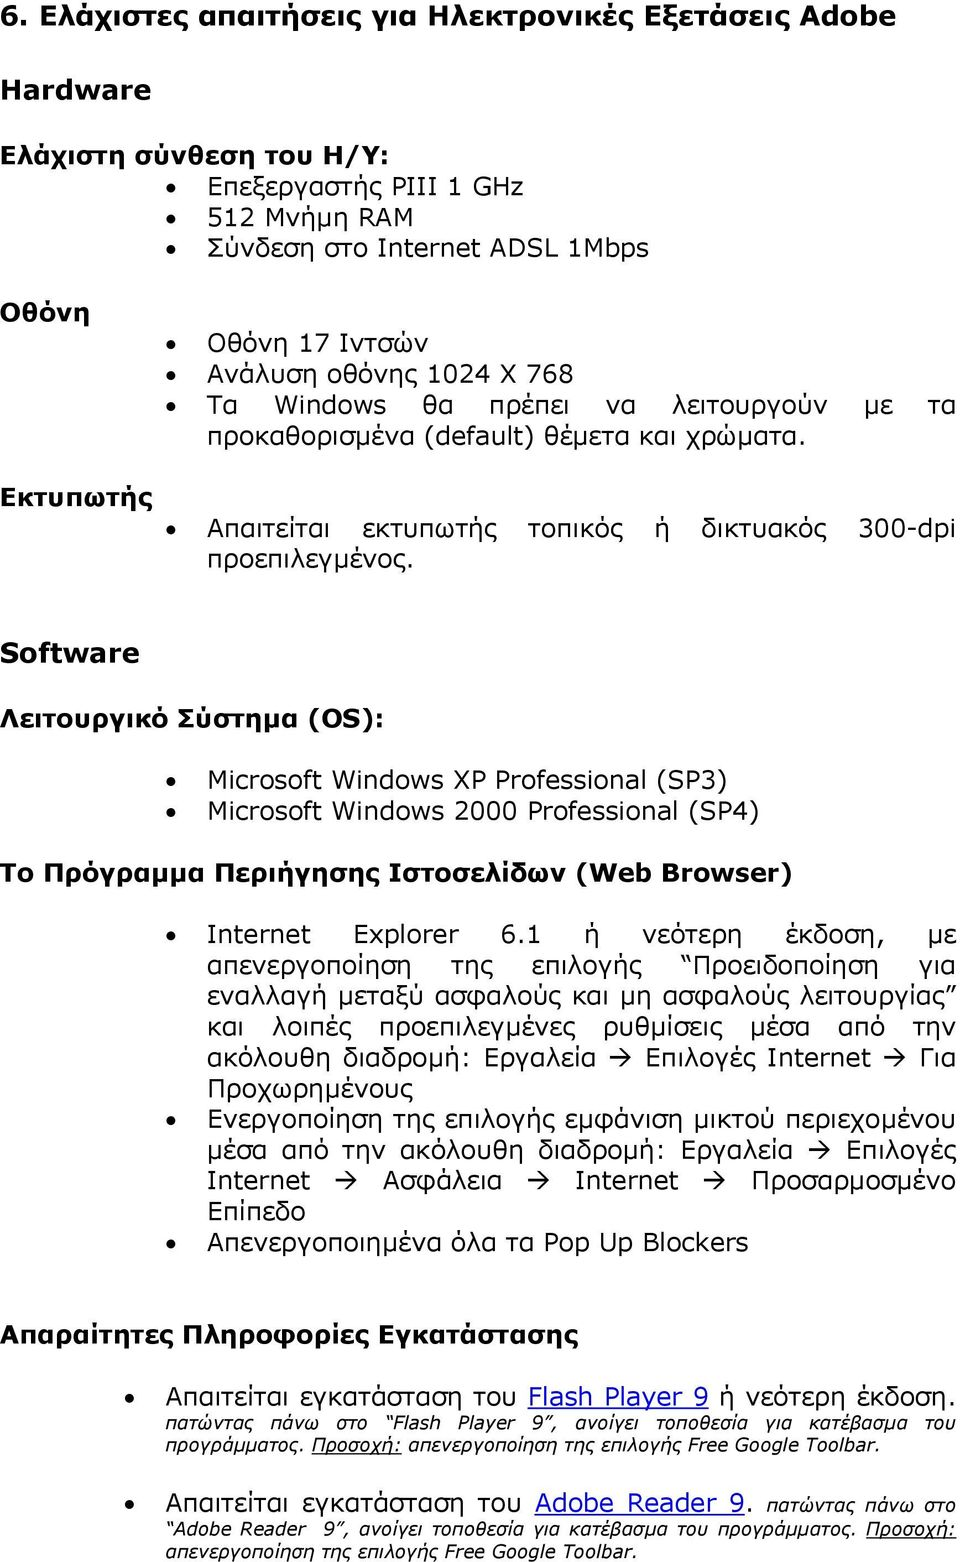 Software Λειτουργικό Σύστηµα (OS): Microsoft Windows XP Professional (SP3) Microsoft Windows 2000 Professional (SP4) Το Πρόγραµµα Περιήγησης Ιστοσελίδων (Web Browser) Internet Explorer 6.